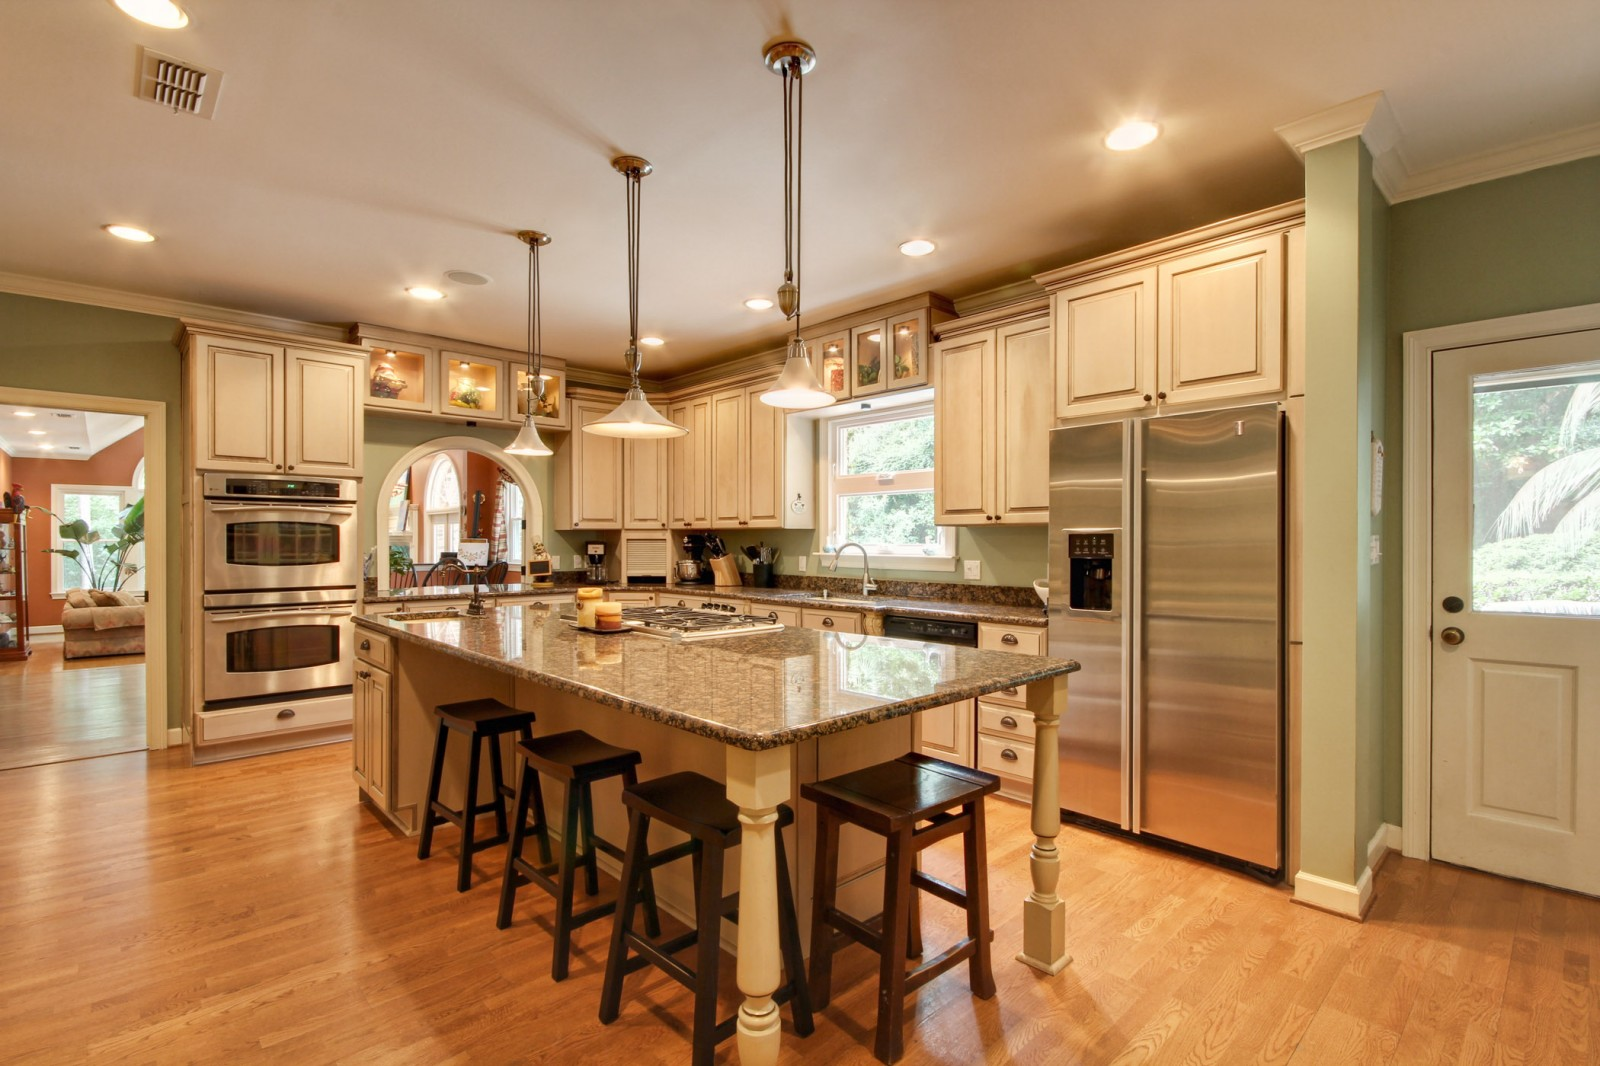 custom kitchens charlotte remodeling charlotte renovations charlotte. Black Bedroom Furniture Sets. Home Design Ideas